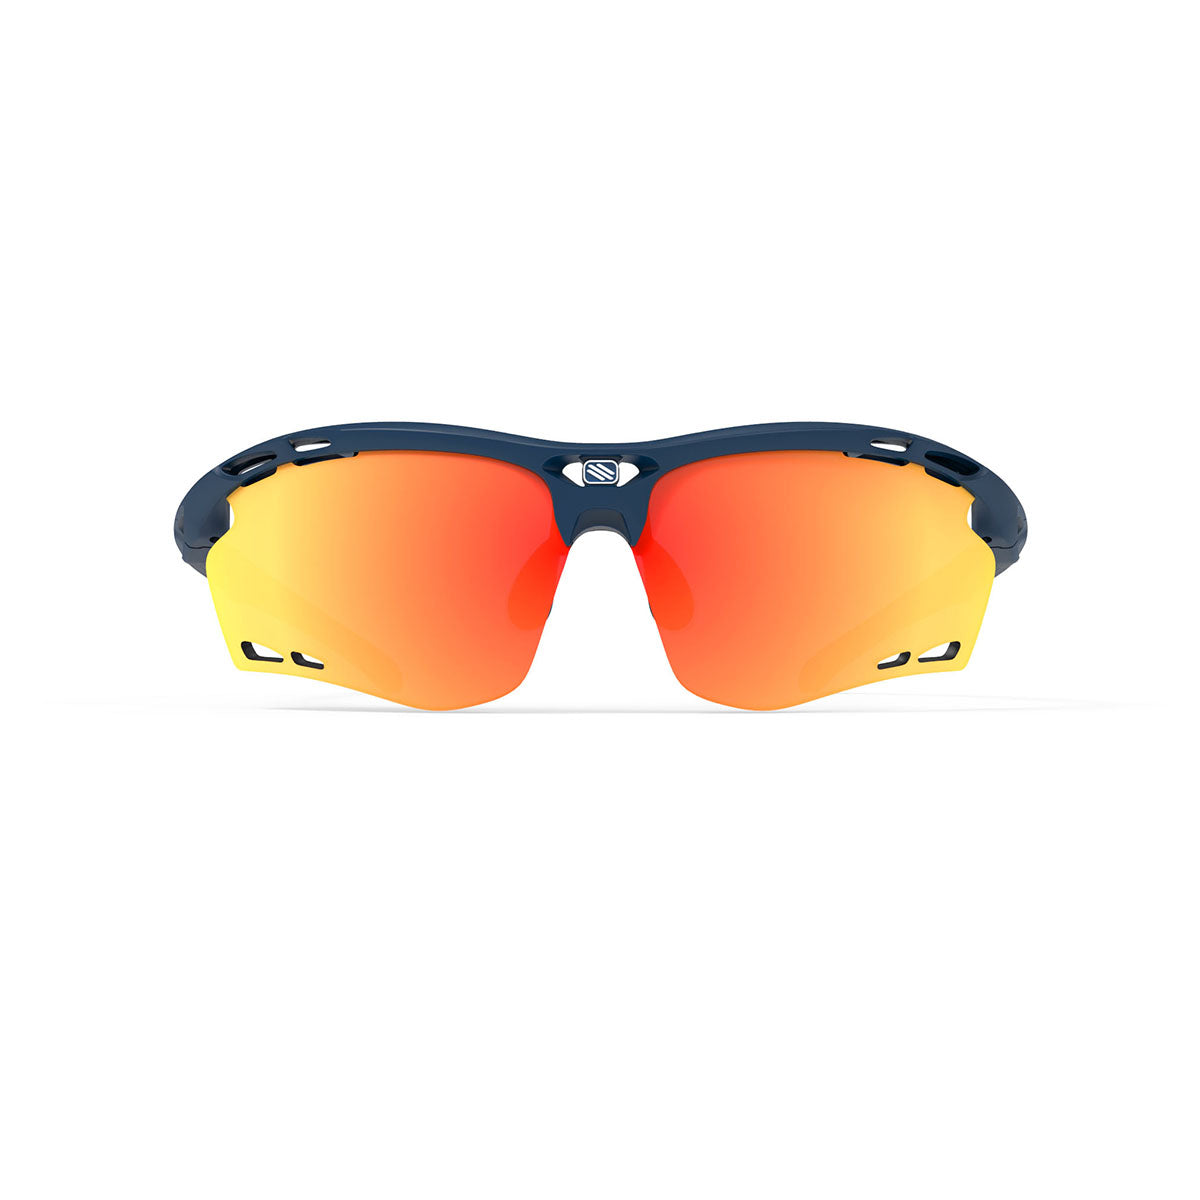 Rudy Project - Propulse - frame color: Navy Blue Matte - lens color: Multilaser Orange - Bumper Color:  - photo angle: Front View Variant Hover Image